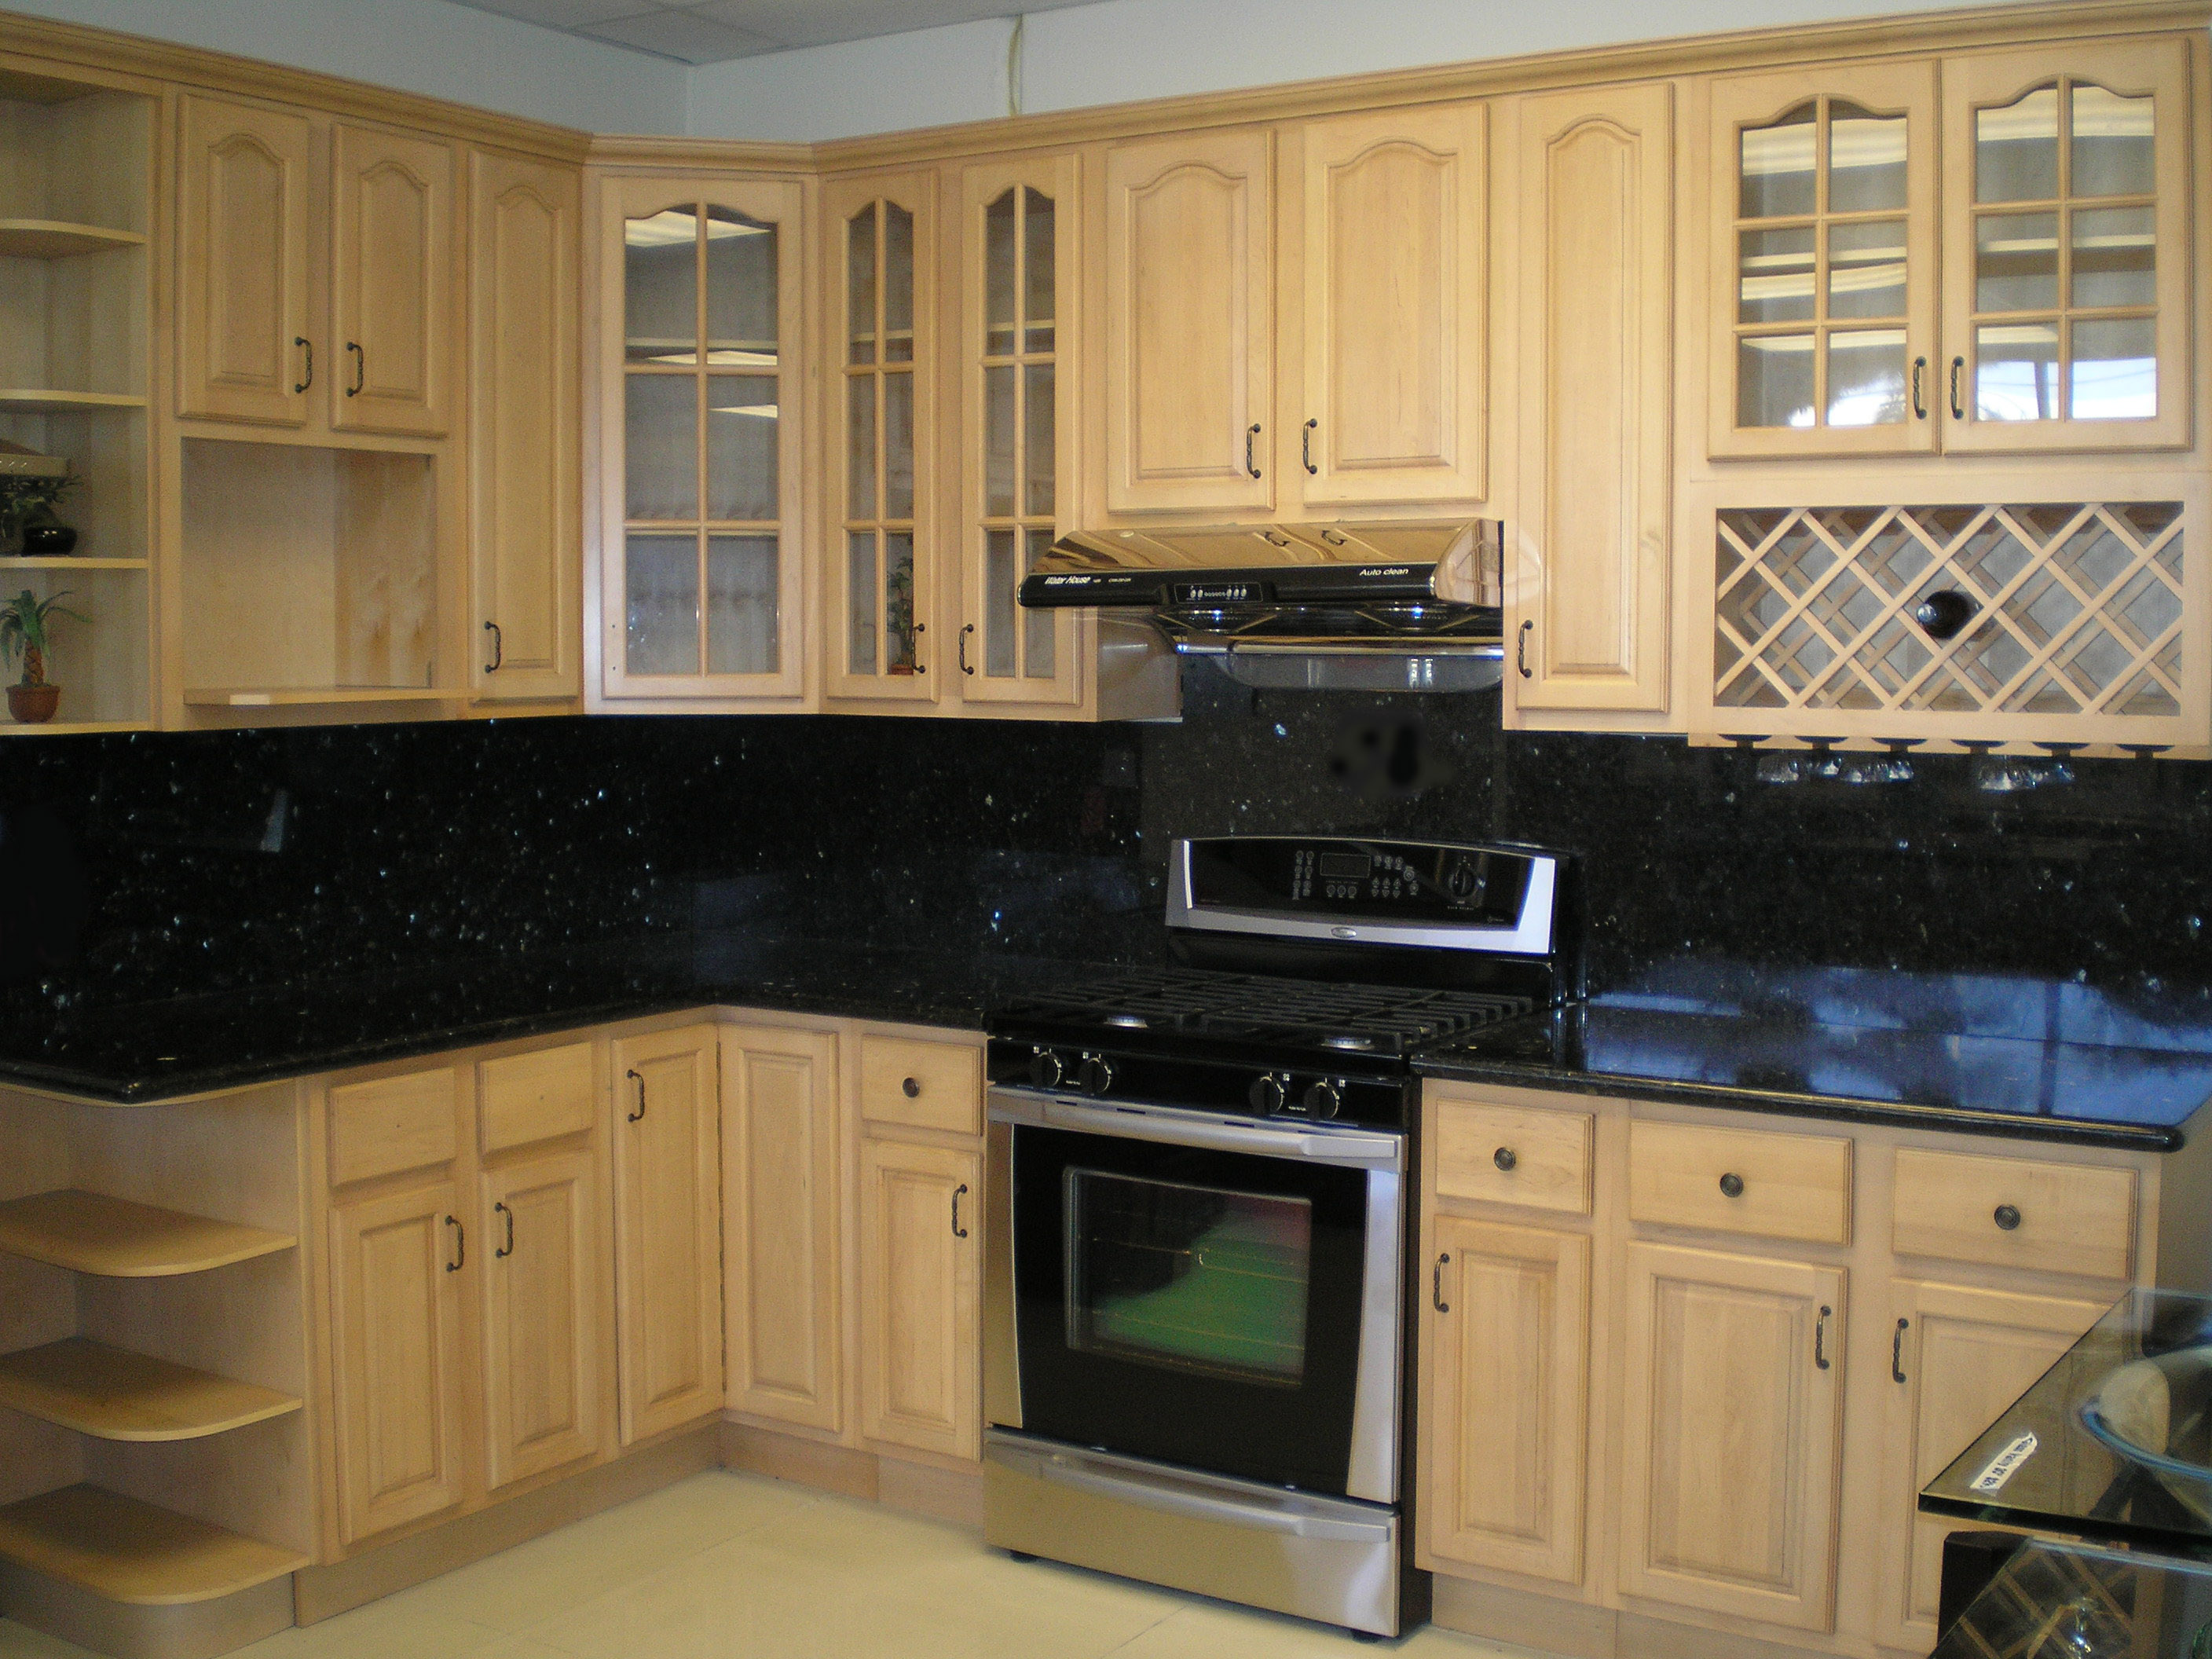 Discount Kitchen Cabinets Cincinnati Images Of Maple Cabinet Kitchens - Best Home Decoration